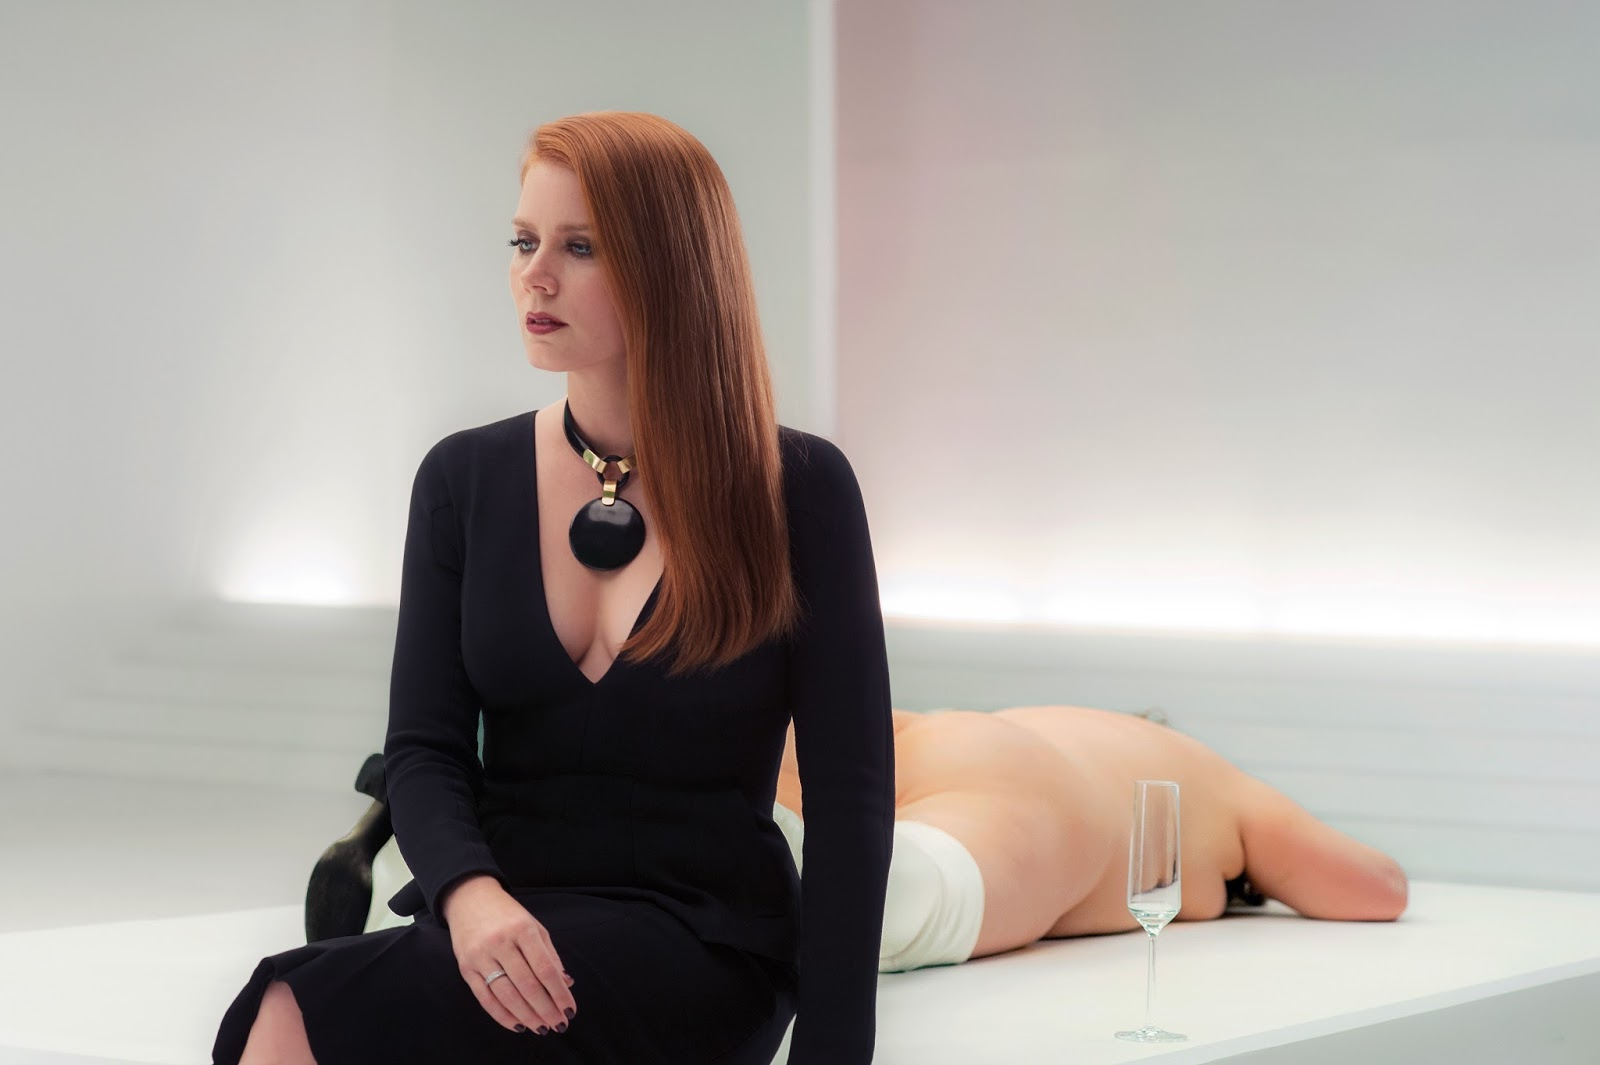 Amy Adams Nude In Nocturnal Animals nocturnal animals starring amy adams & jake gyllenhaal: my